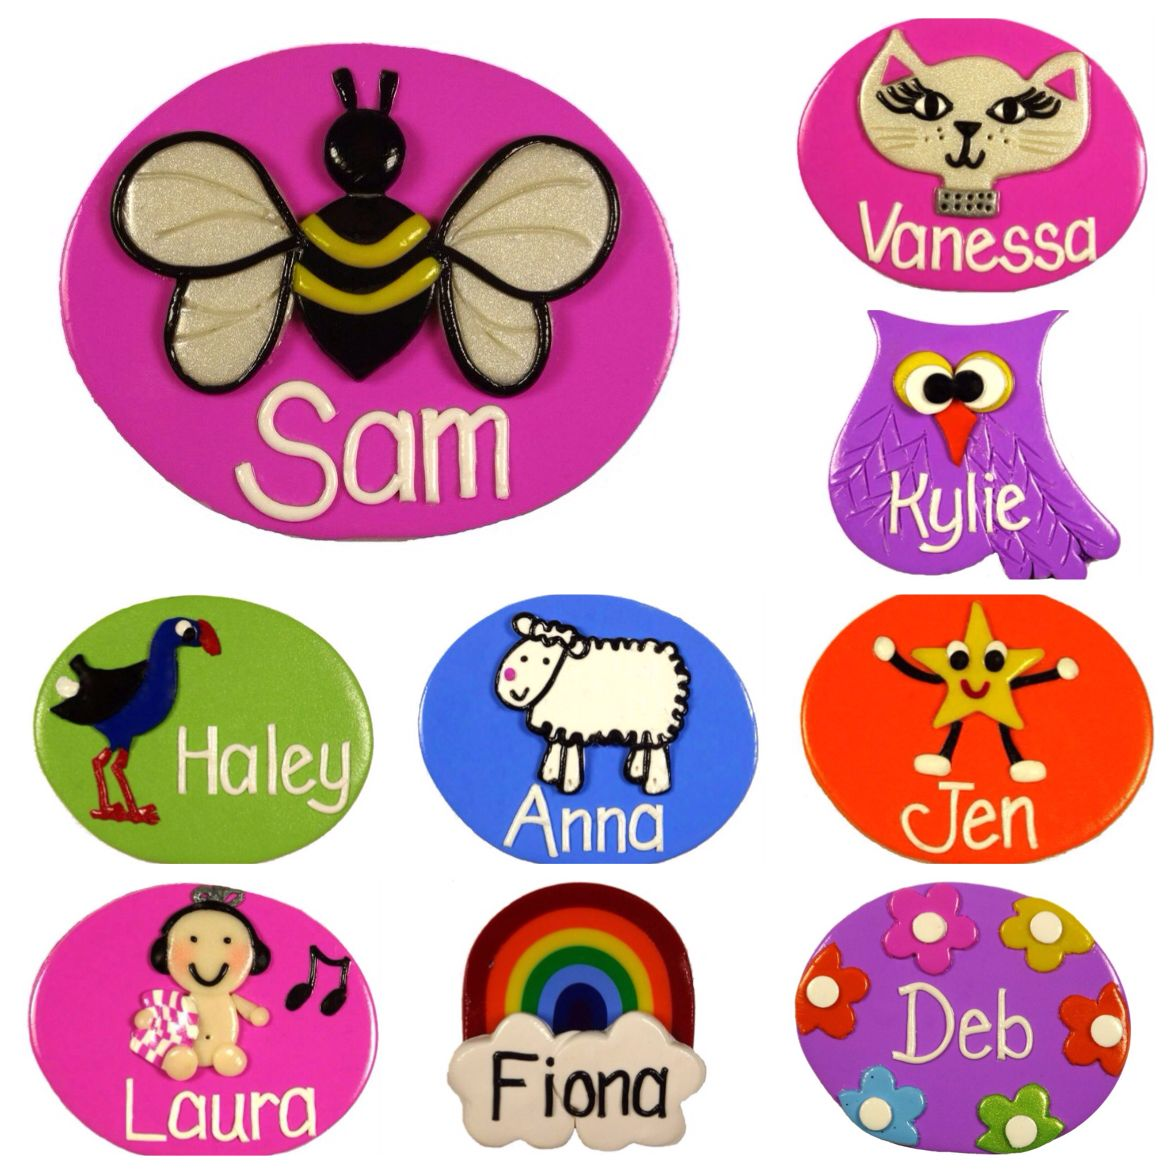 Name badges for nurses childcare workers caregivers